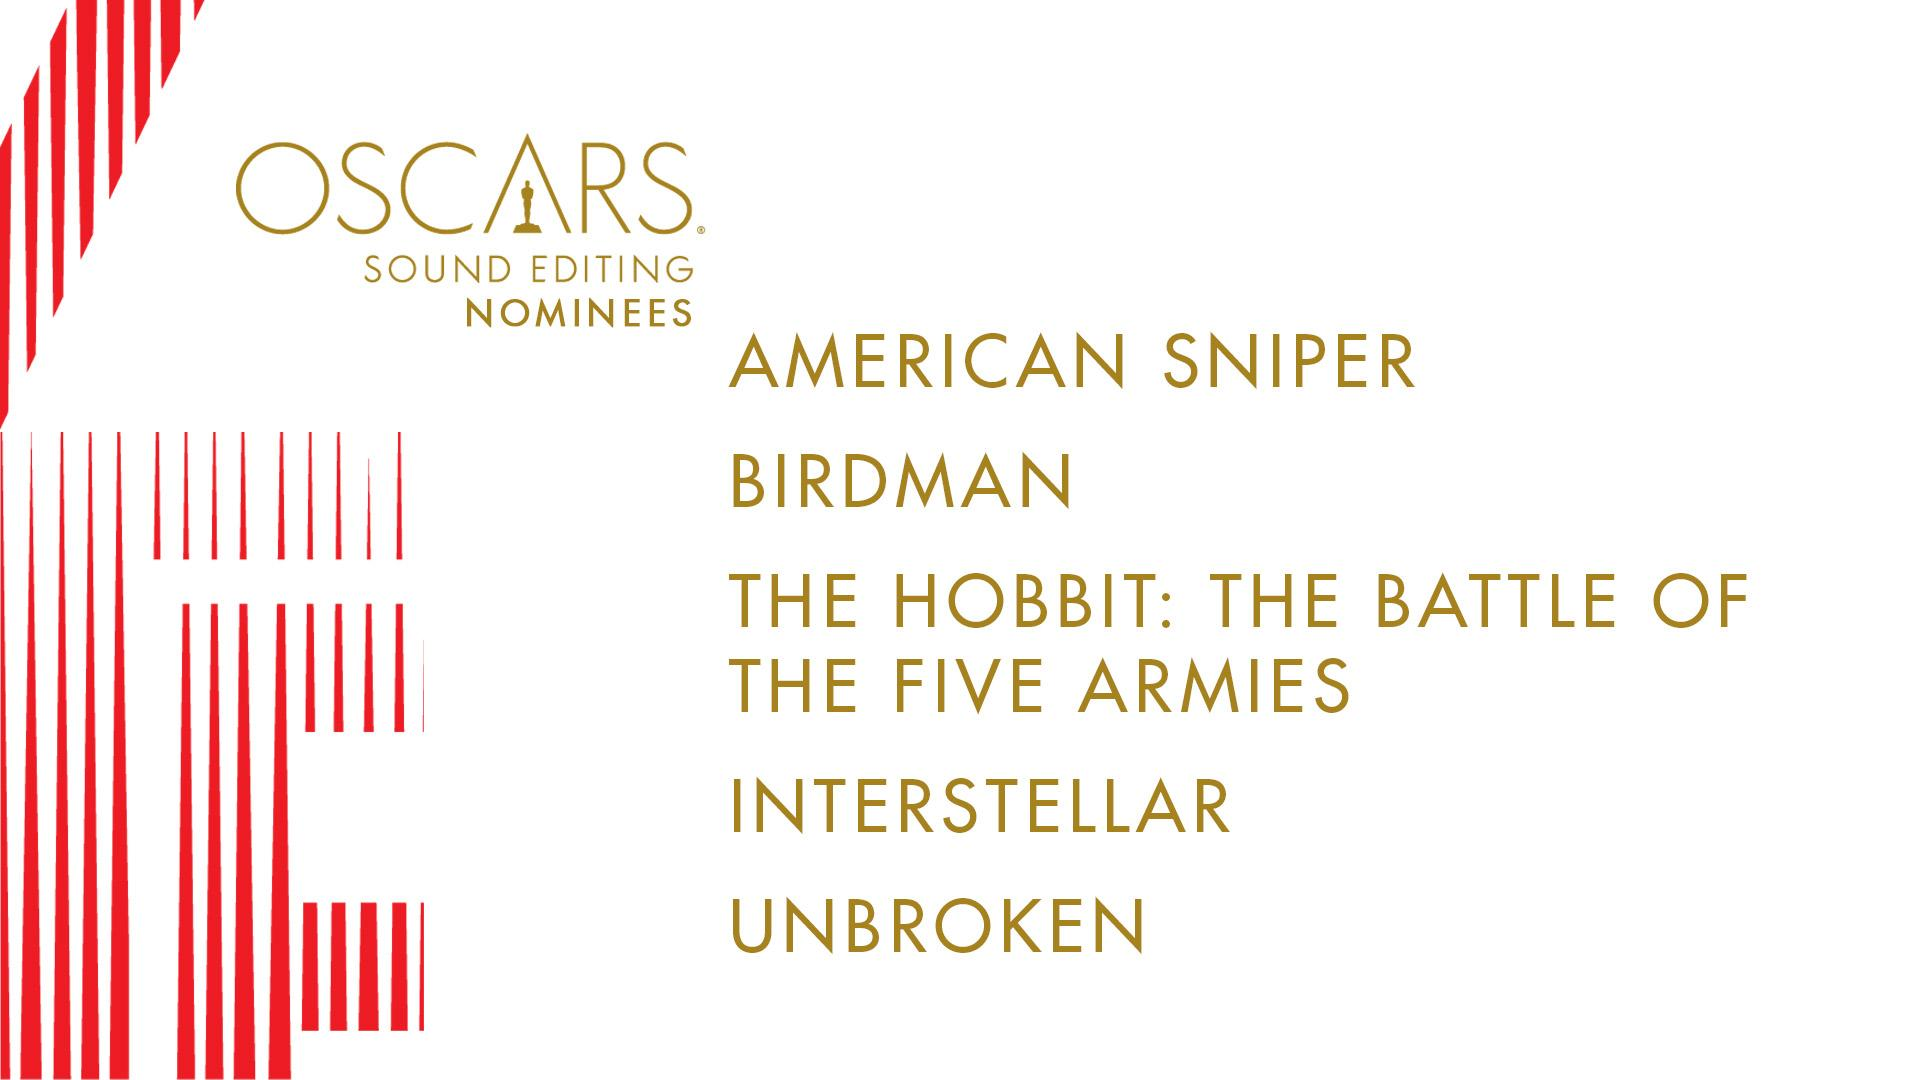 RT @TheAcademy: Congrats to our nominees for Sound Editing… #OscarNoms http://t.co/YslSm0QxTx